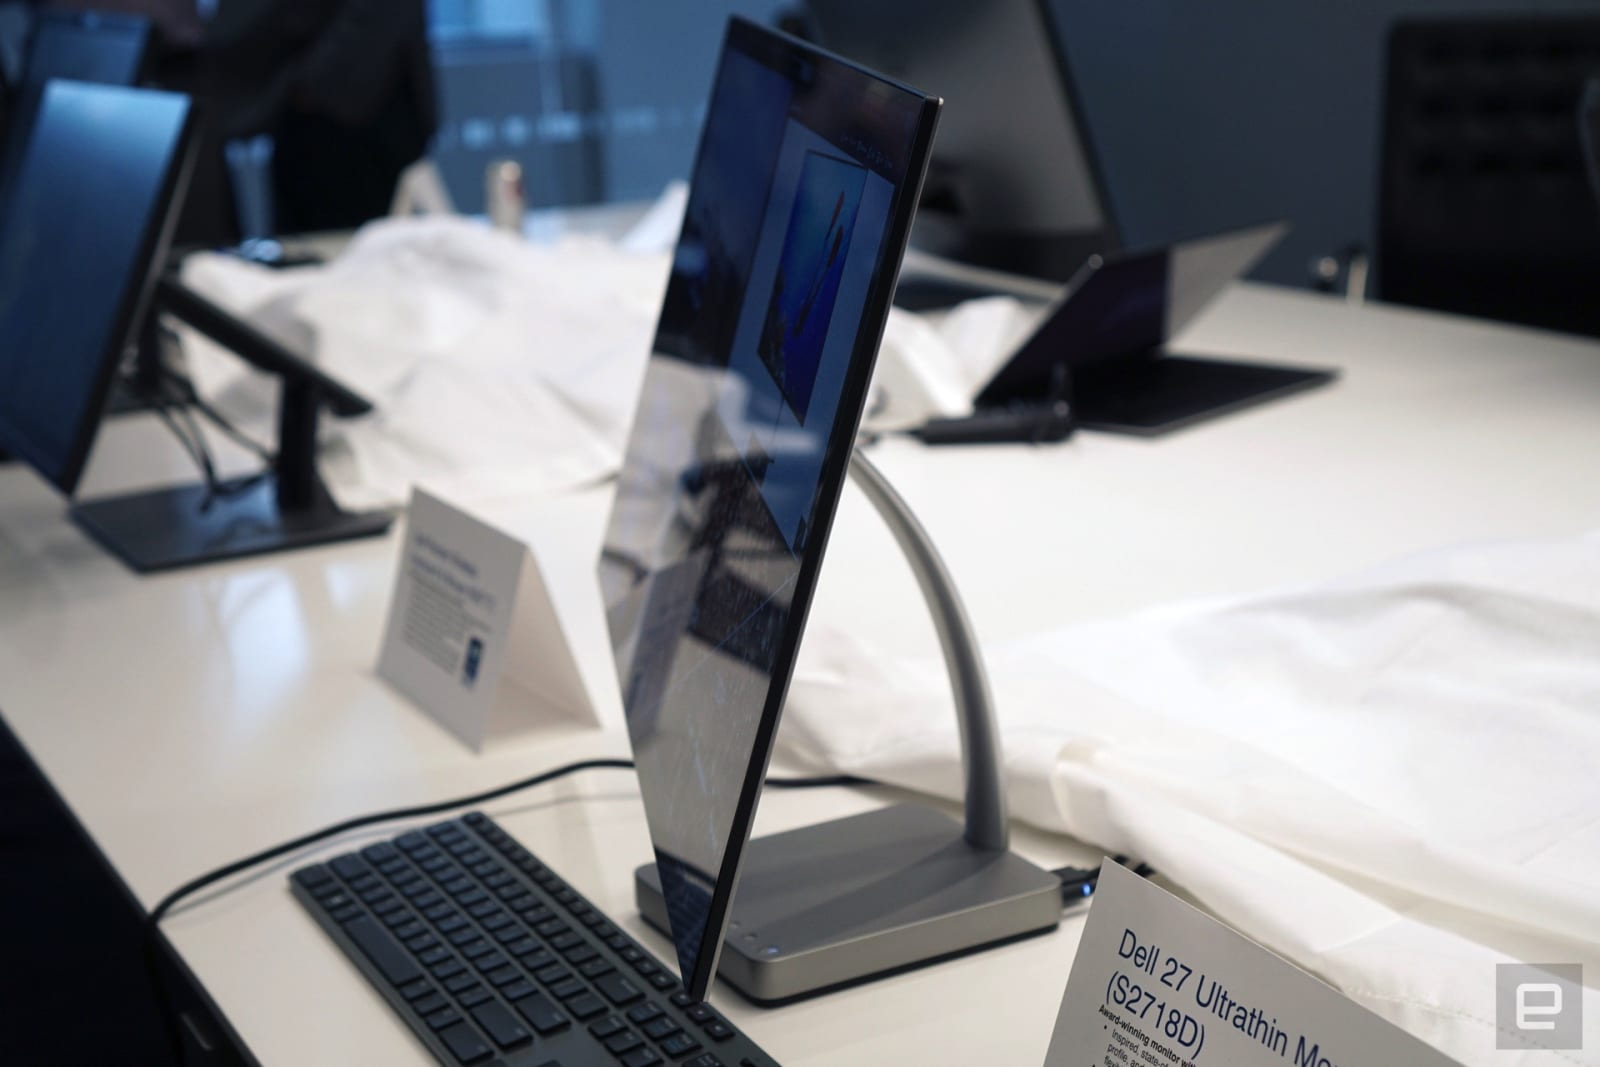 The Dell 27 Ultrathin monitor really lives up to its name